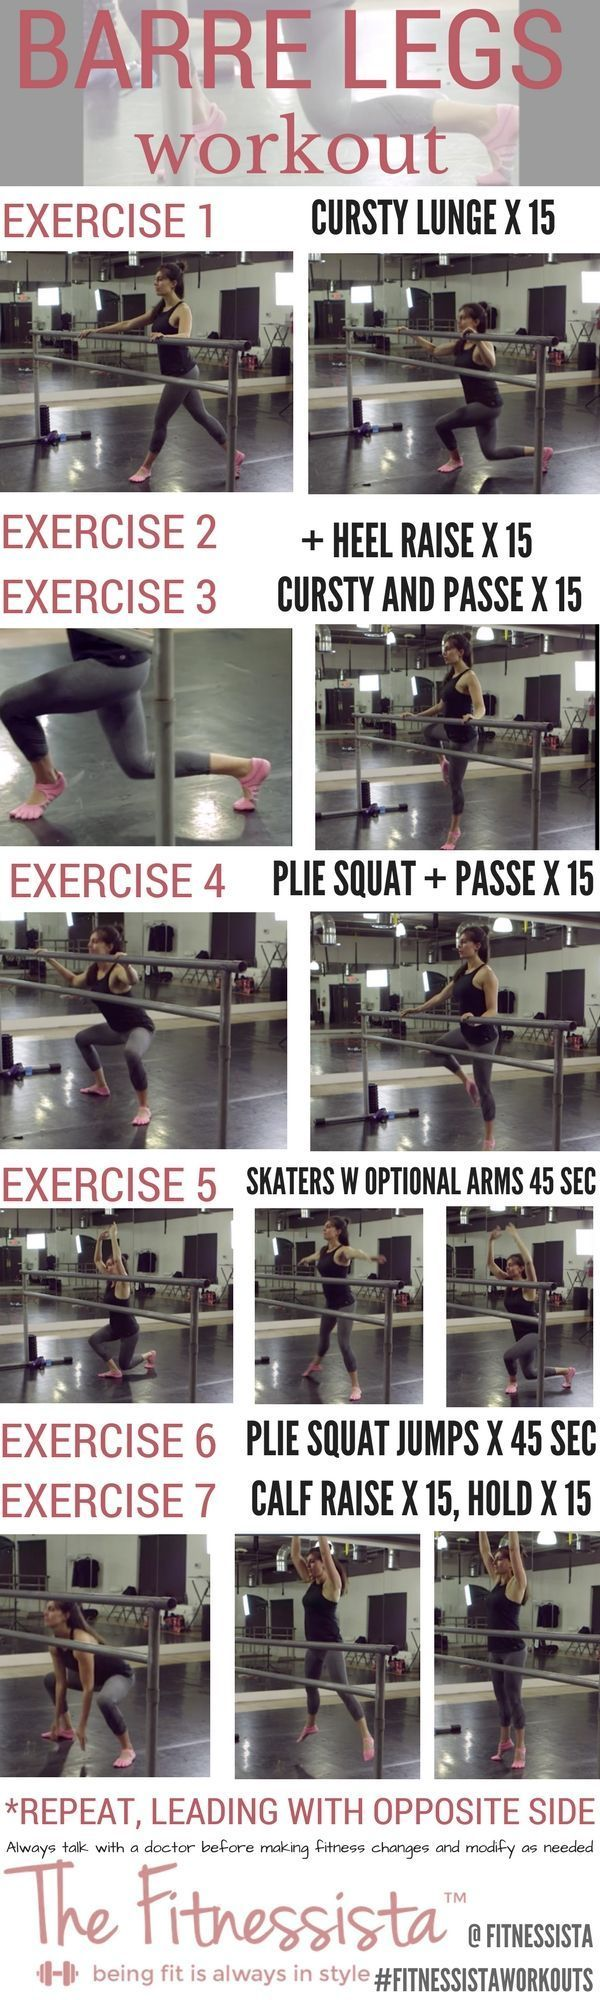 Barre Legs Workout